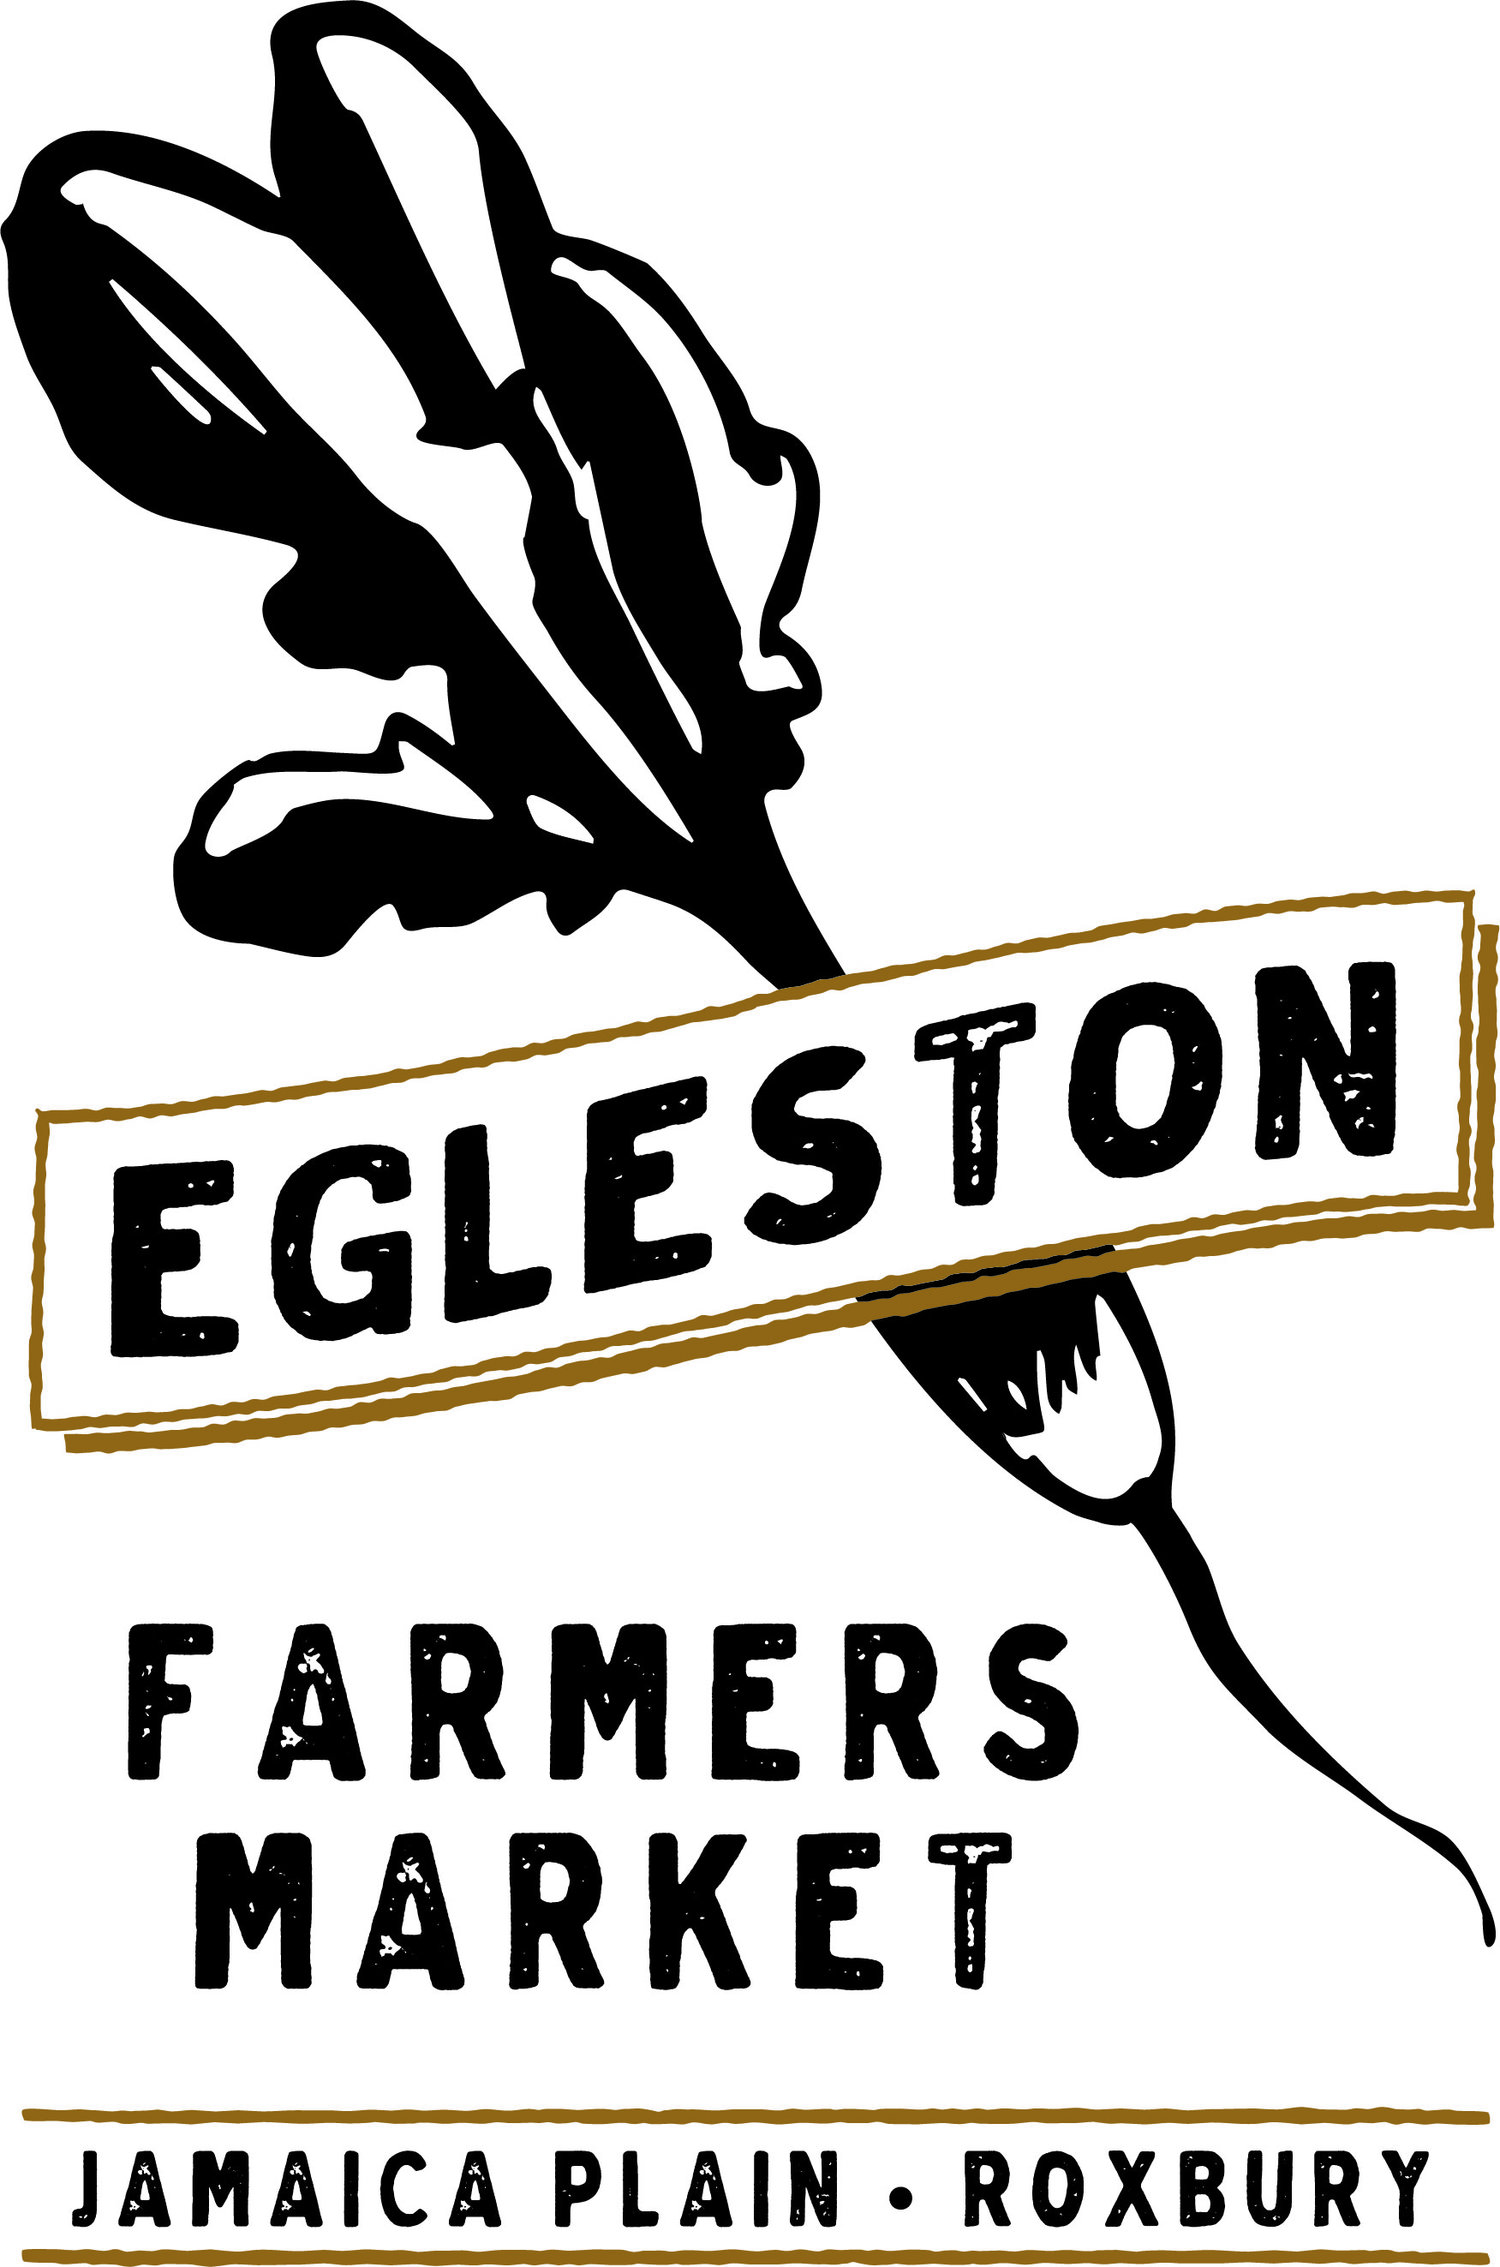 Egleston Farmers Market